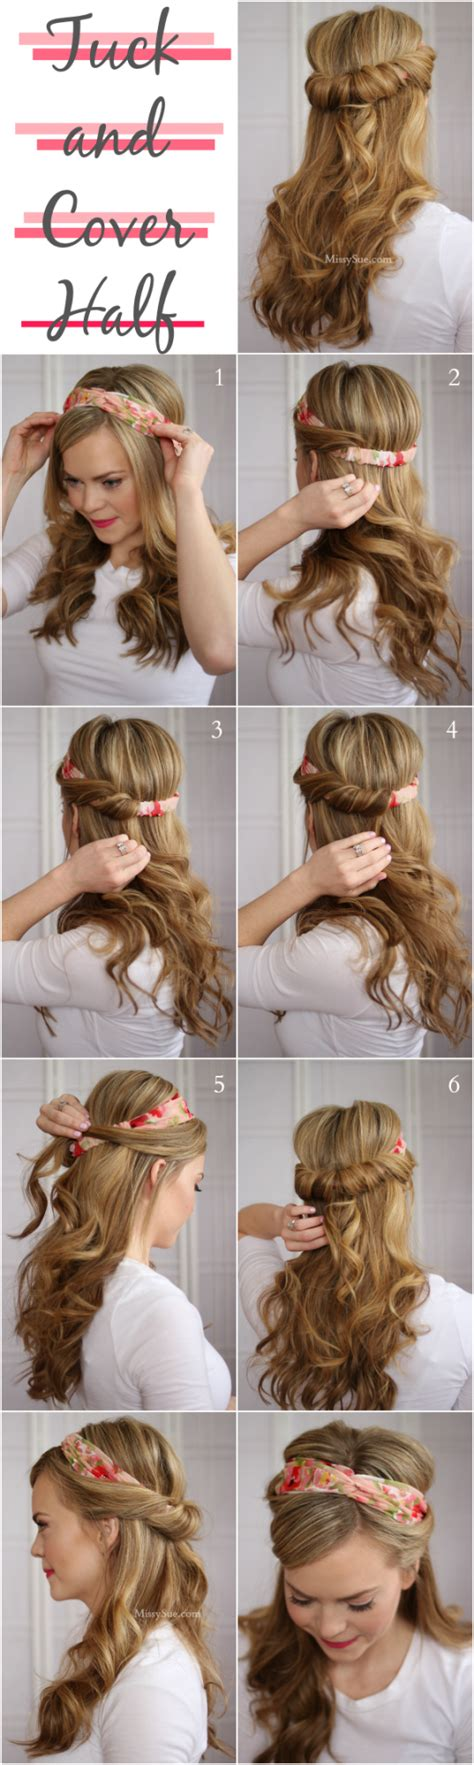 11 easy hairstyles step by step hairstyles for all 18 easy step by step tutorials for perfect hairstyles